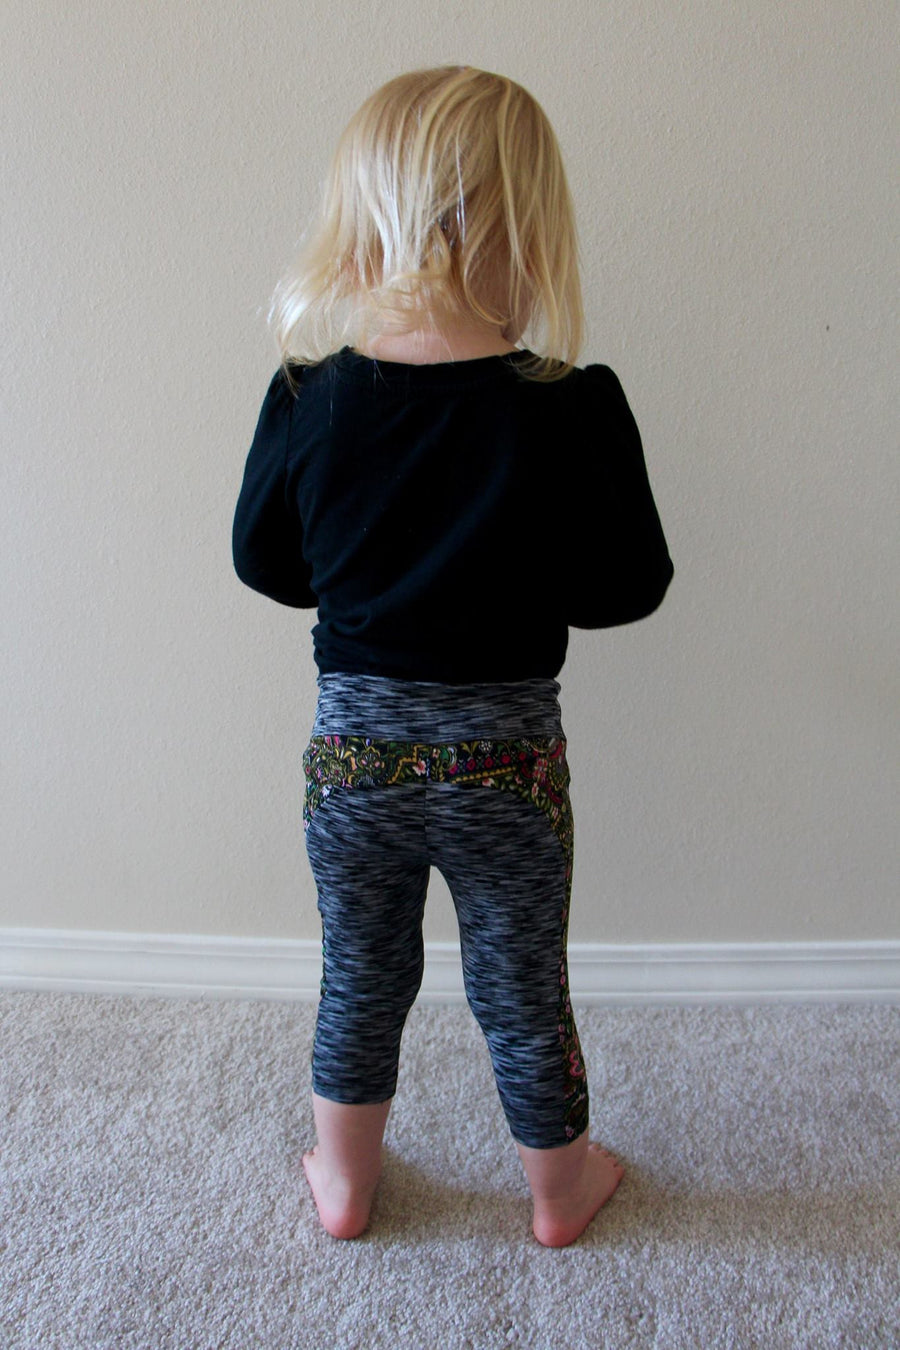 Girls Stride Athletic Tights Sewing Pattern in Sizes 2T to 12